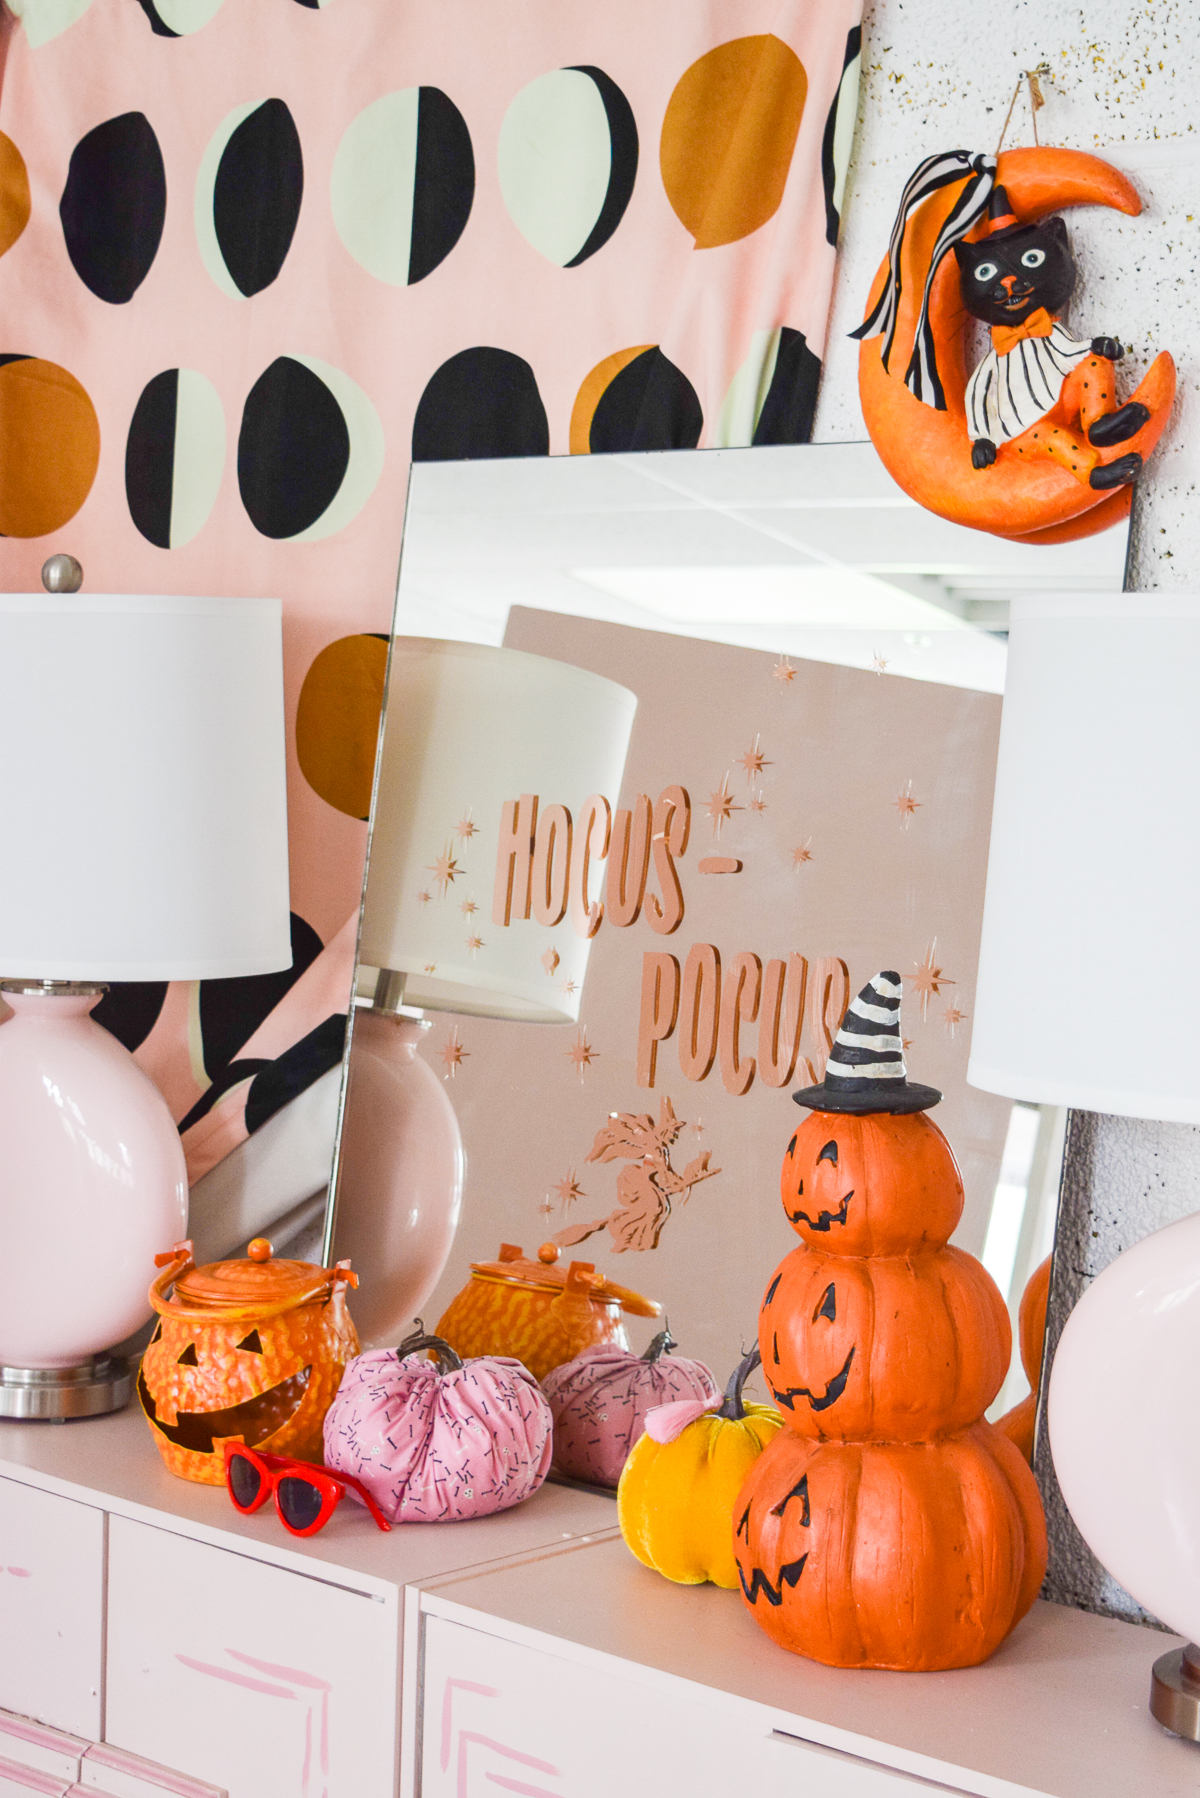 hocus pocus mirror on a pink sideboard